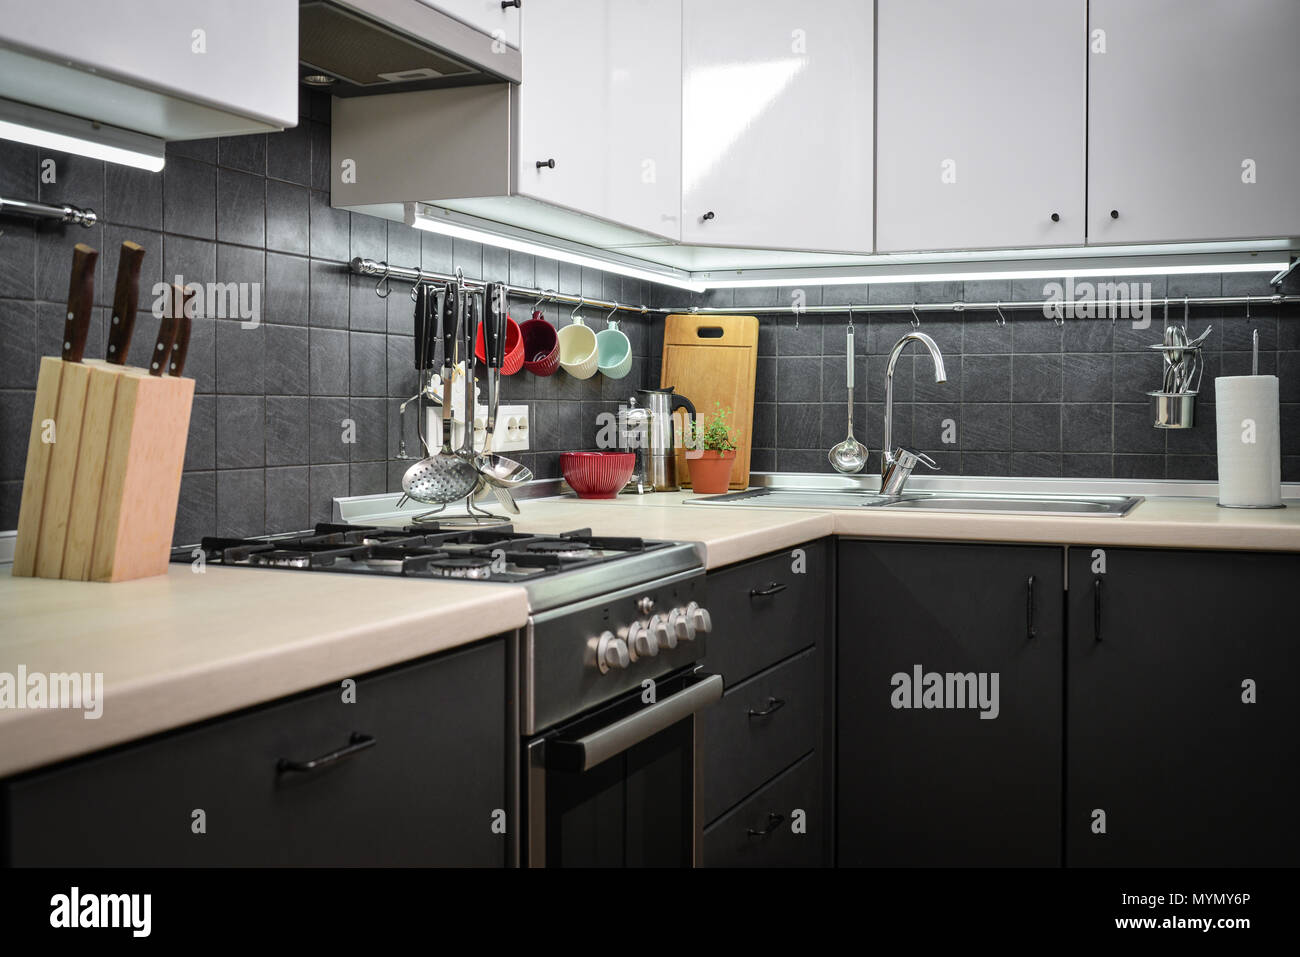 A fragment of the modern style kitchen with rail system and kitchen utensils and houseplant Stock Photo